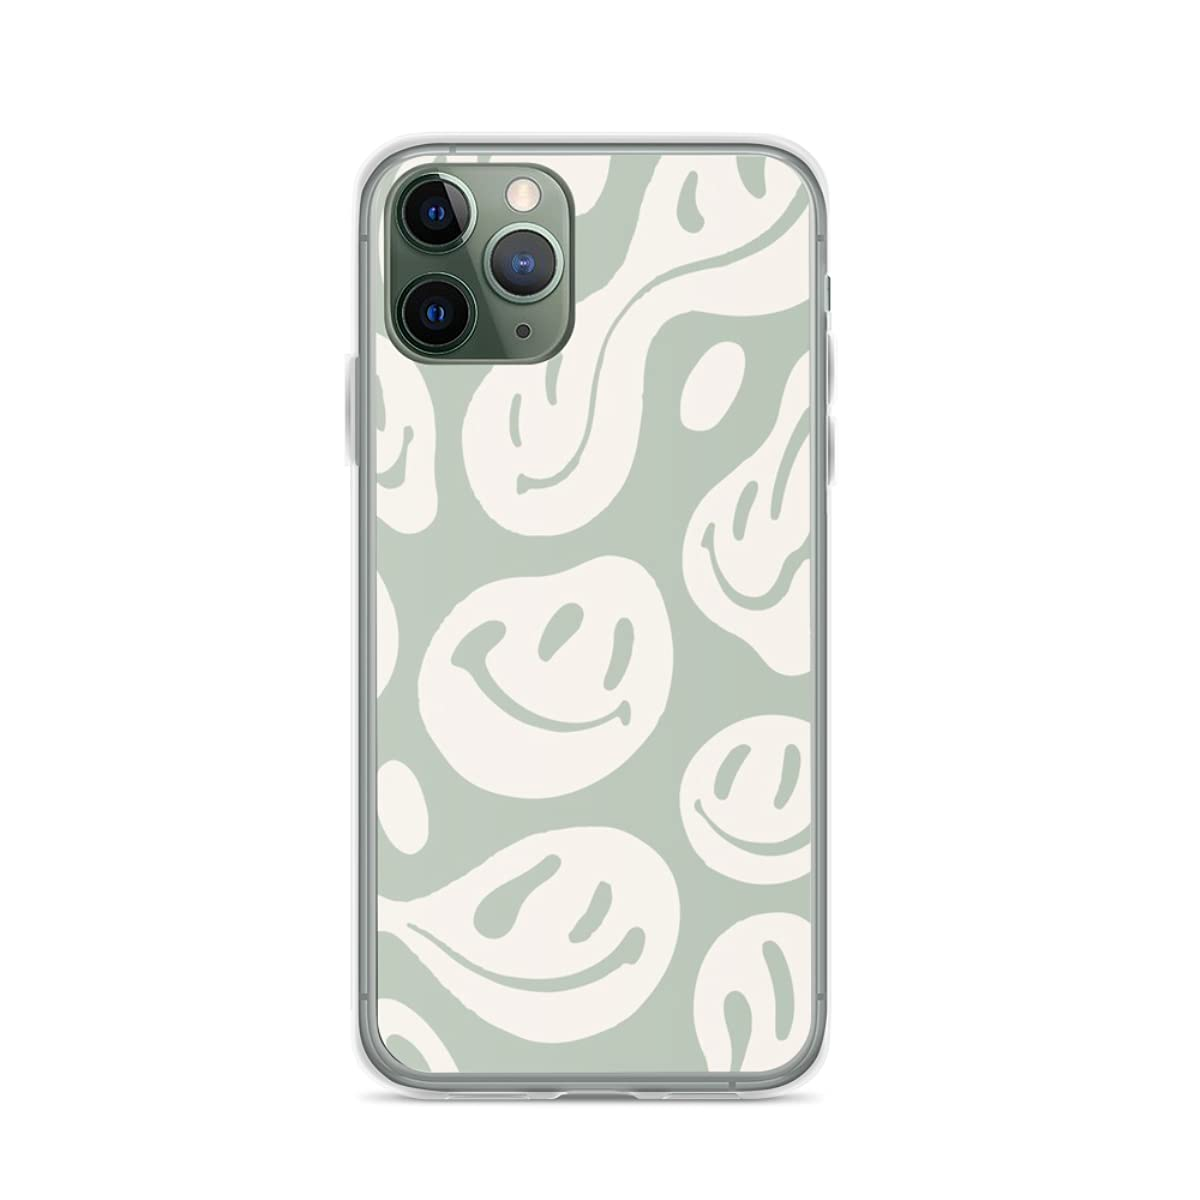 Phone Case Liquid Smiley Sage Green Compatible with iPhone 12 11 X Xs Xr 8 7 6 6s Plus Mini Pro Max Samsung Galaxy Note S9 S10 S20 Ultra Plus